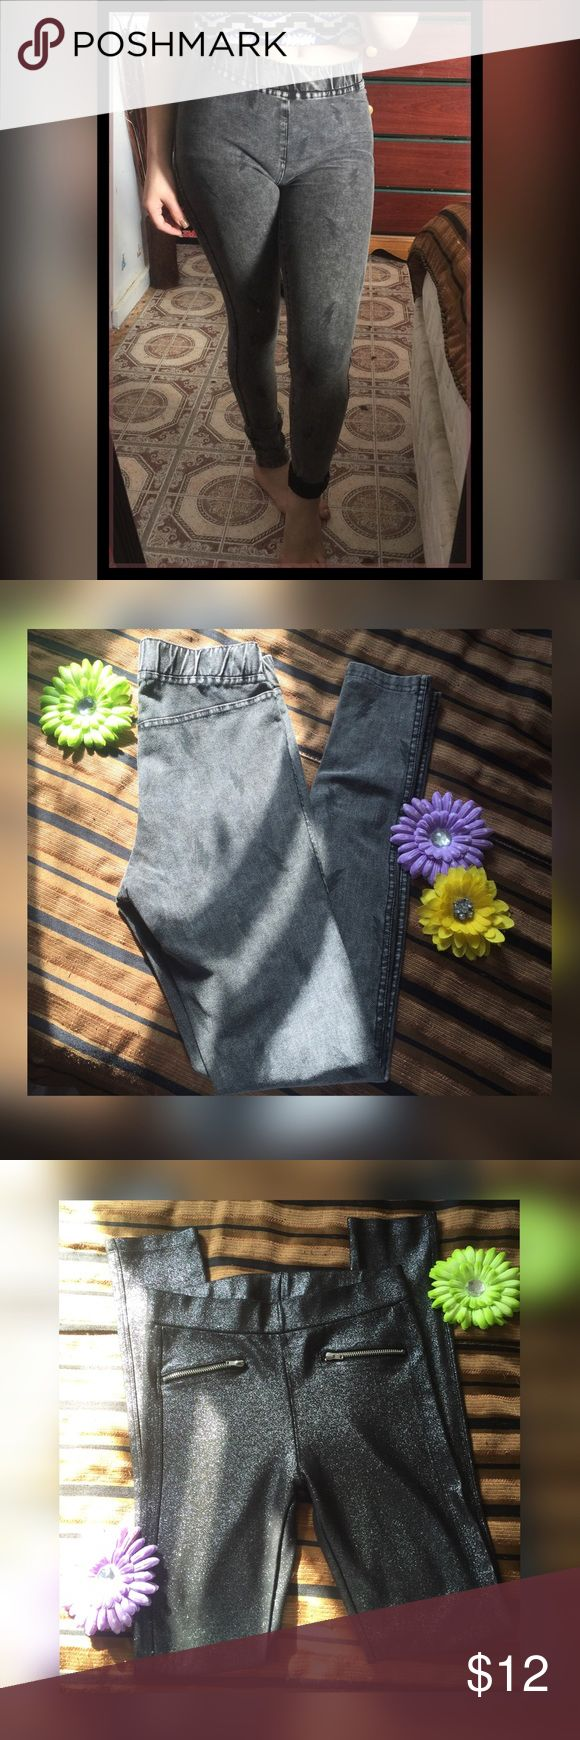 🖤 H&M Leggings Bundle • 🖤 Bought Them And Never Got to Use Them. They're NEW Without Tags ! :) Size Is 12-13Y (Girls) Fits (0) In Women's ! 🦋 H&M Pants Leggings